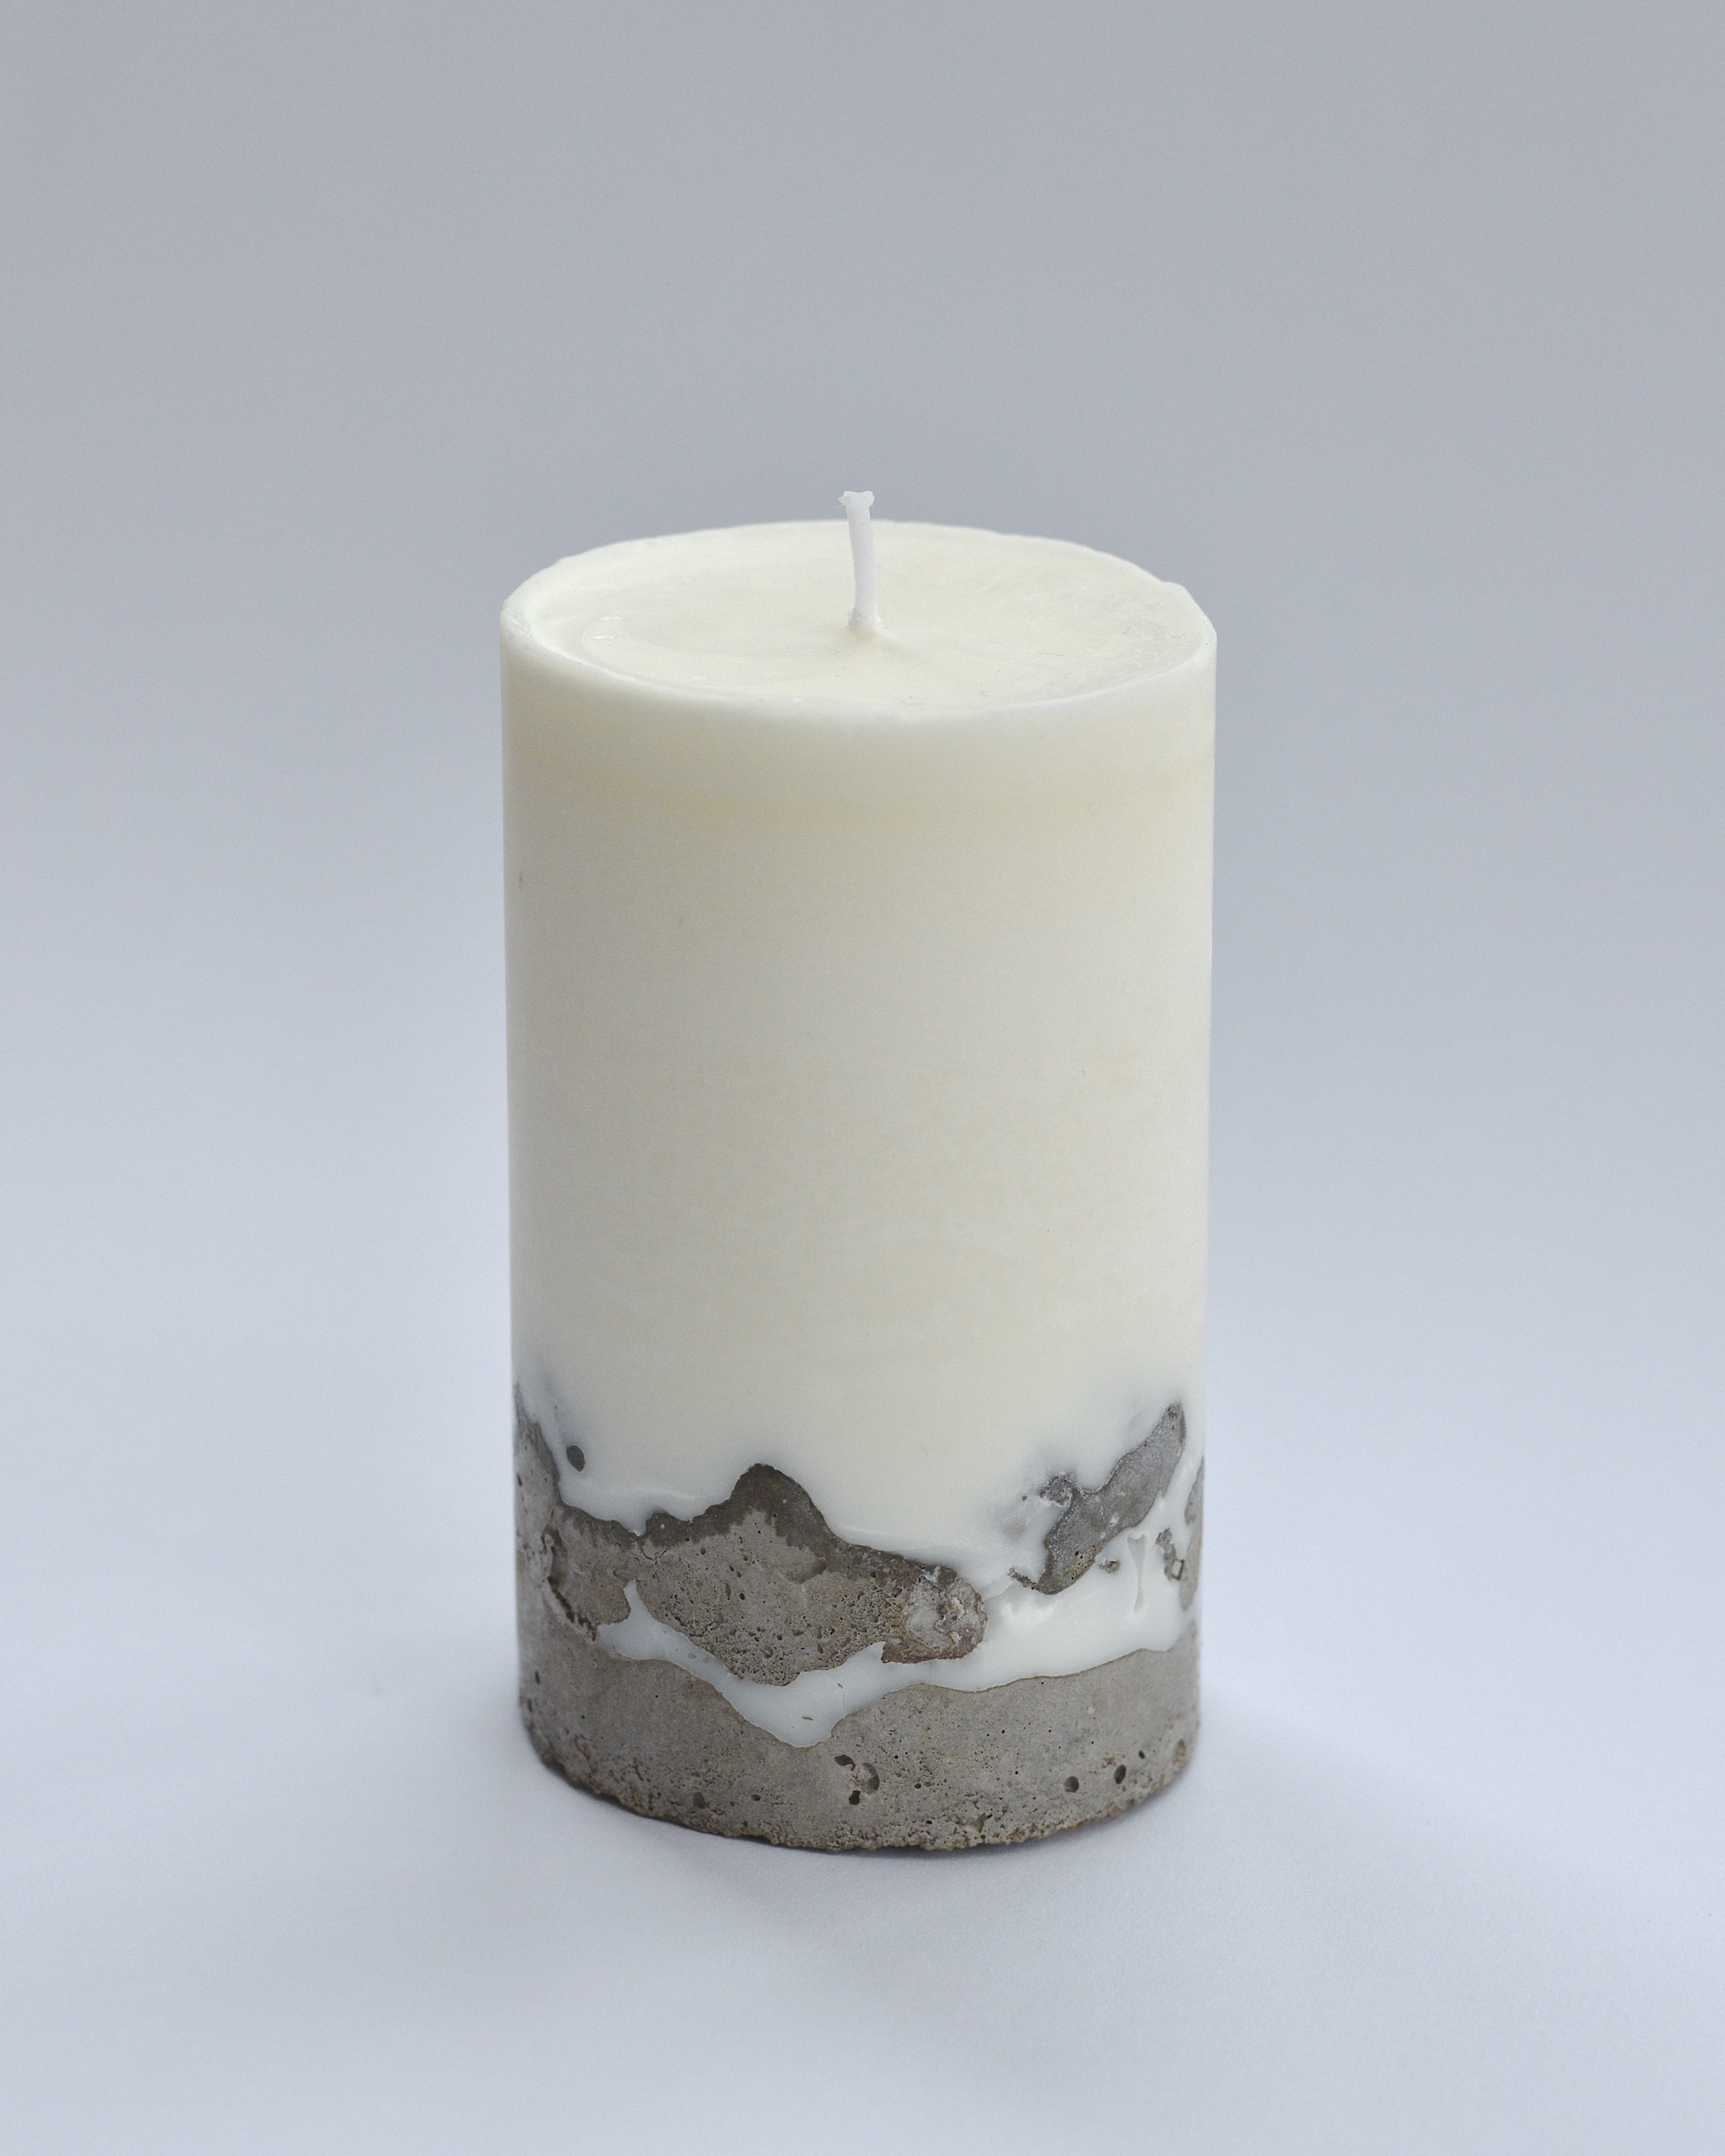 Concrete & Soy Wax Candle – Plain